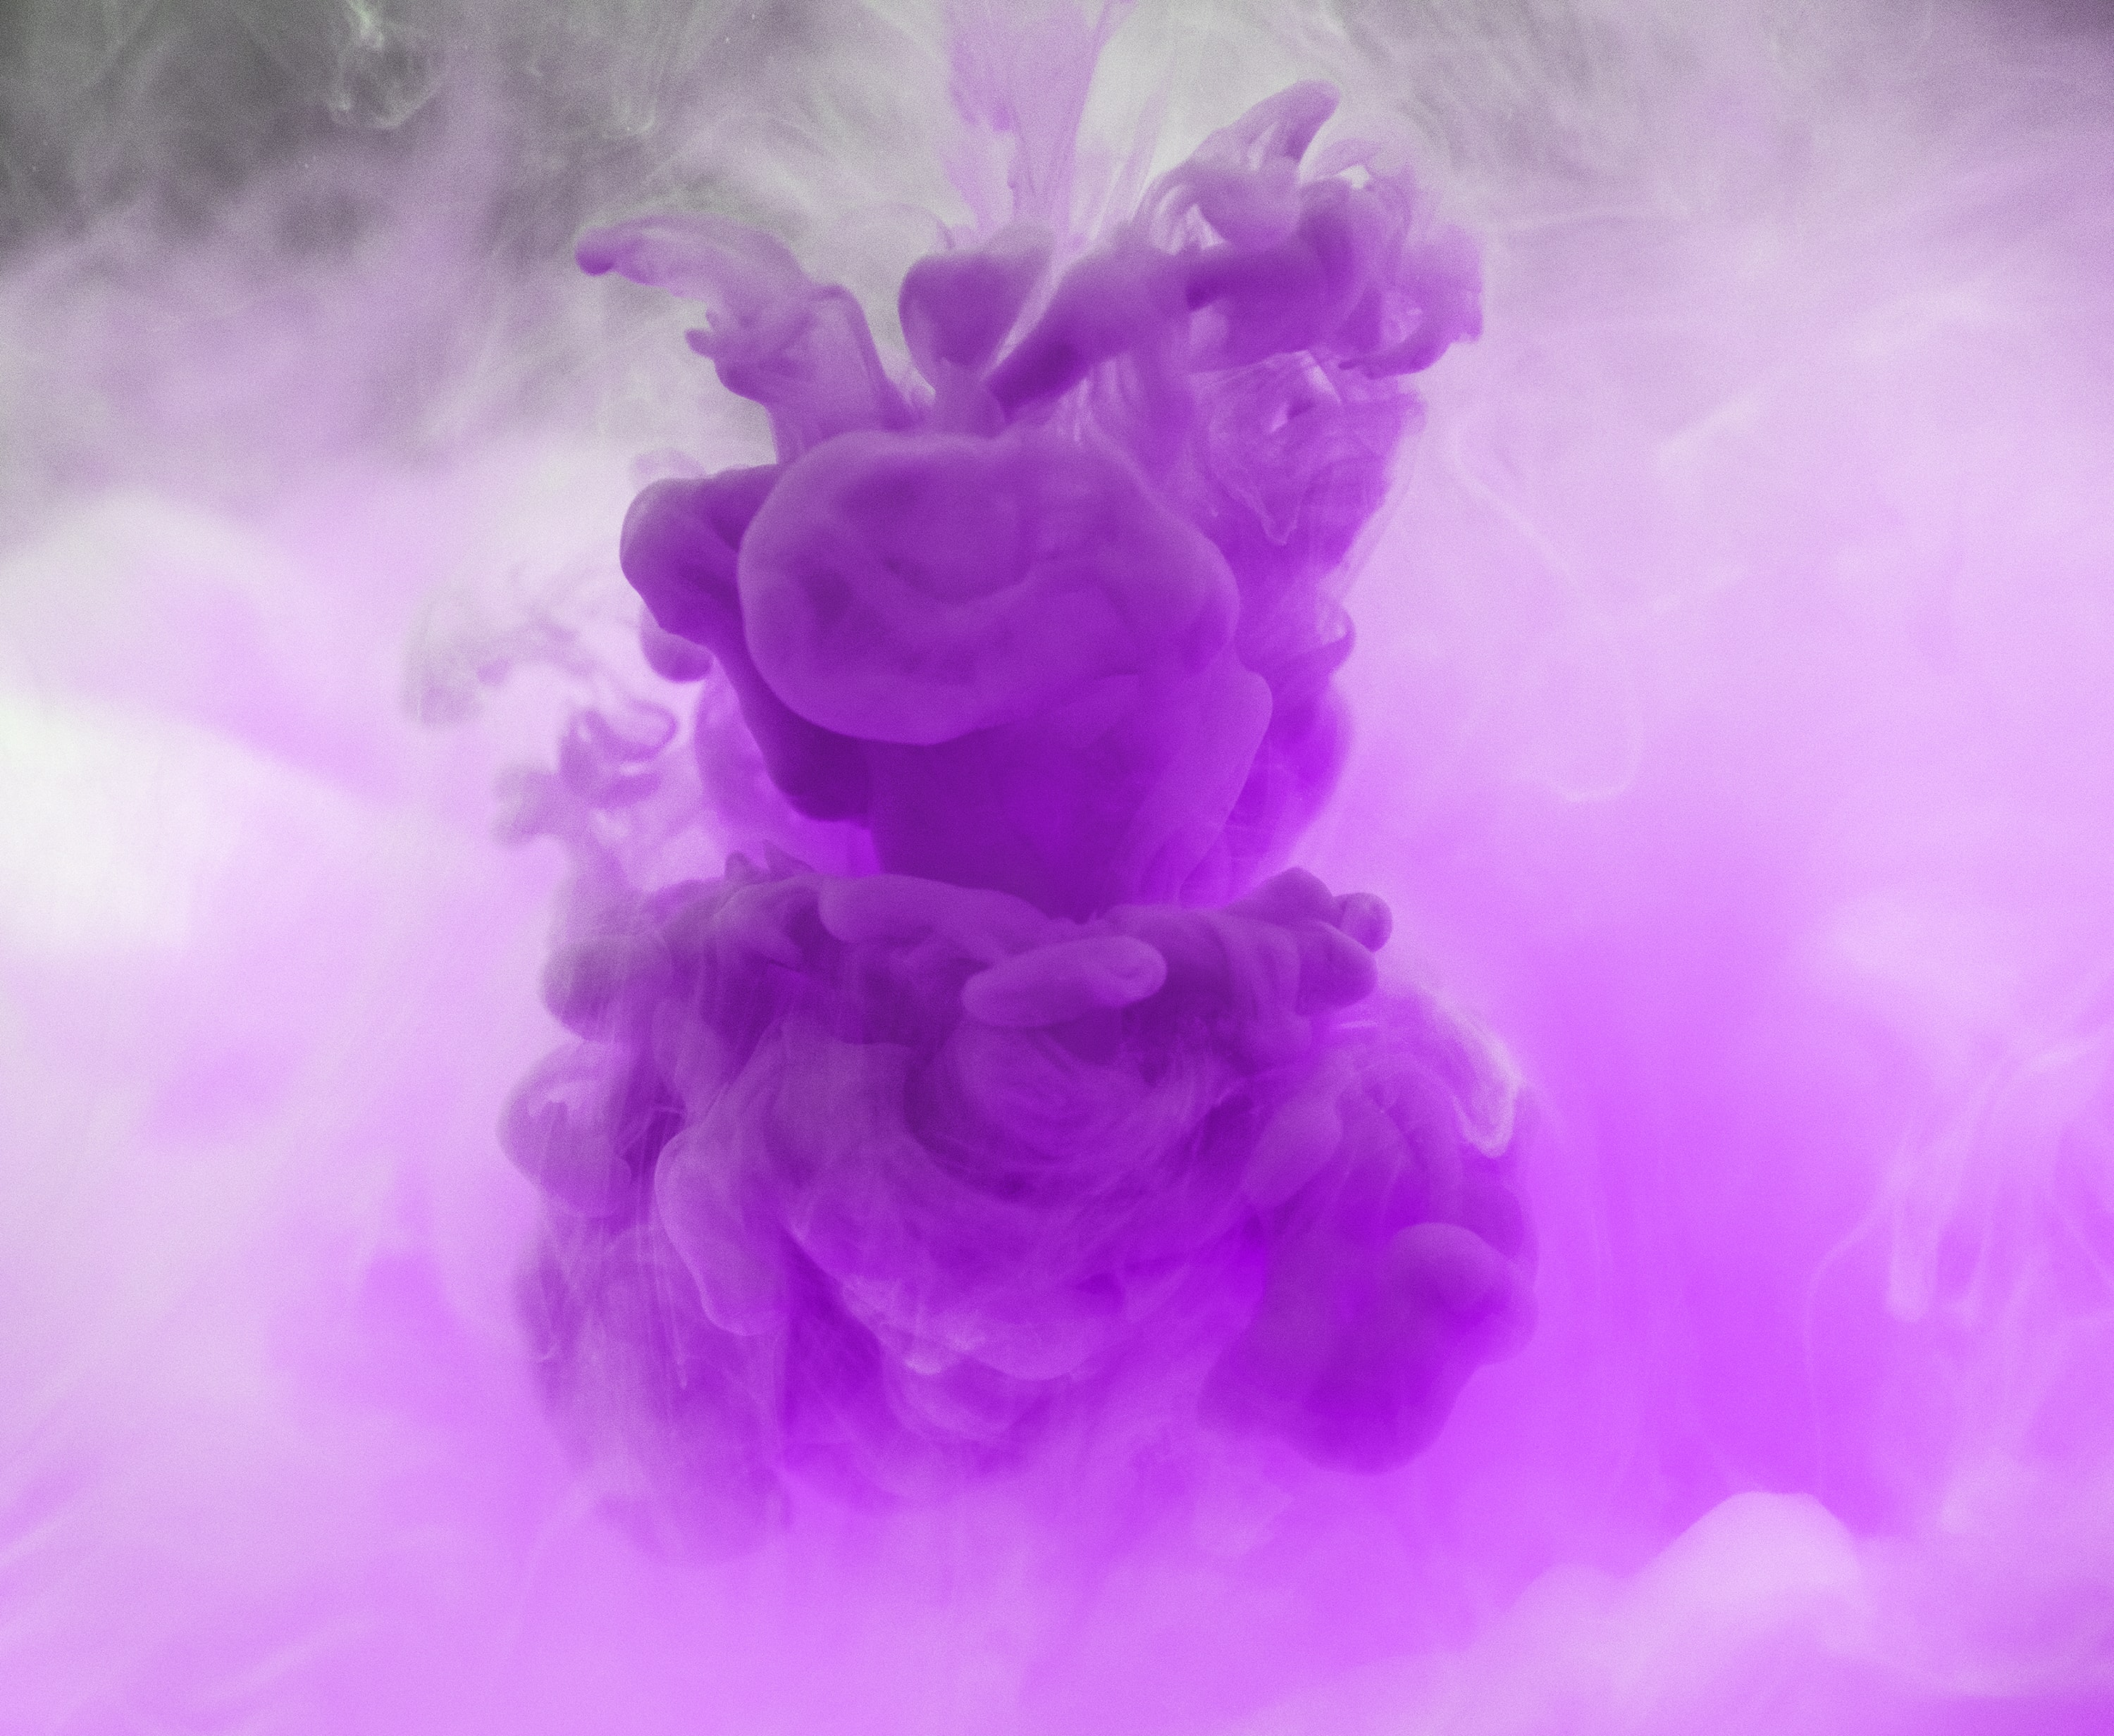 Purple Pictures Hq Download Free Images On Unsplash